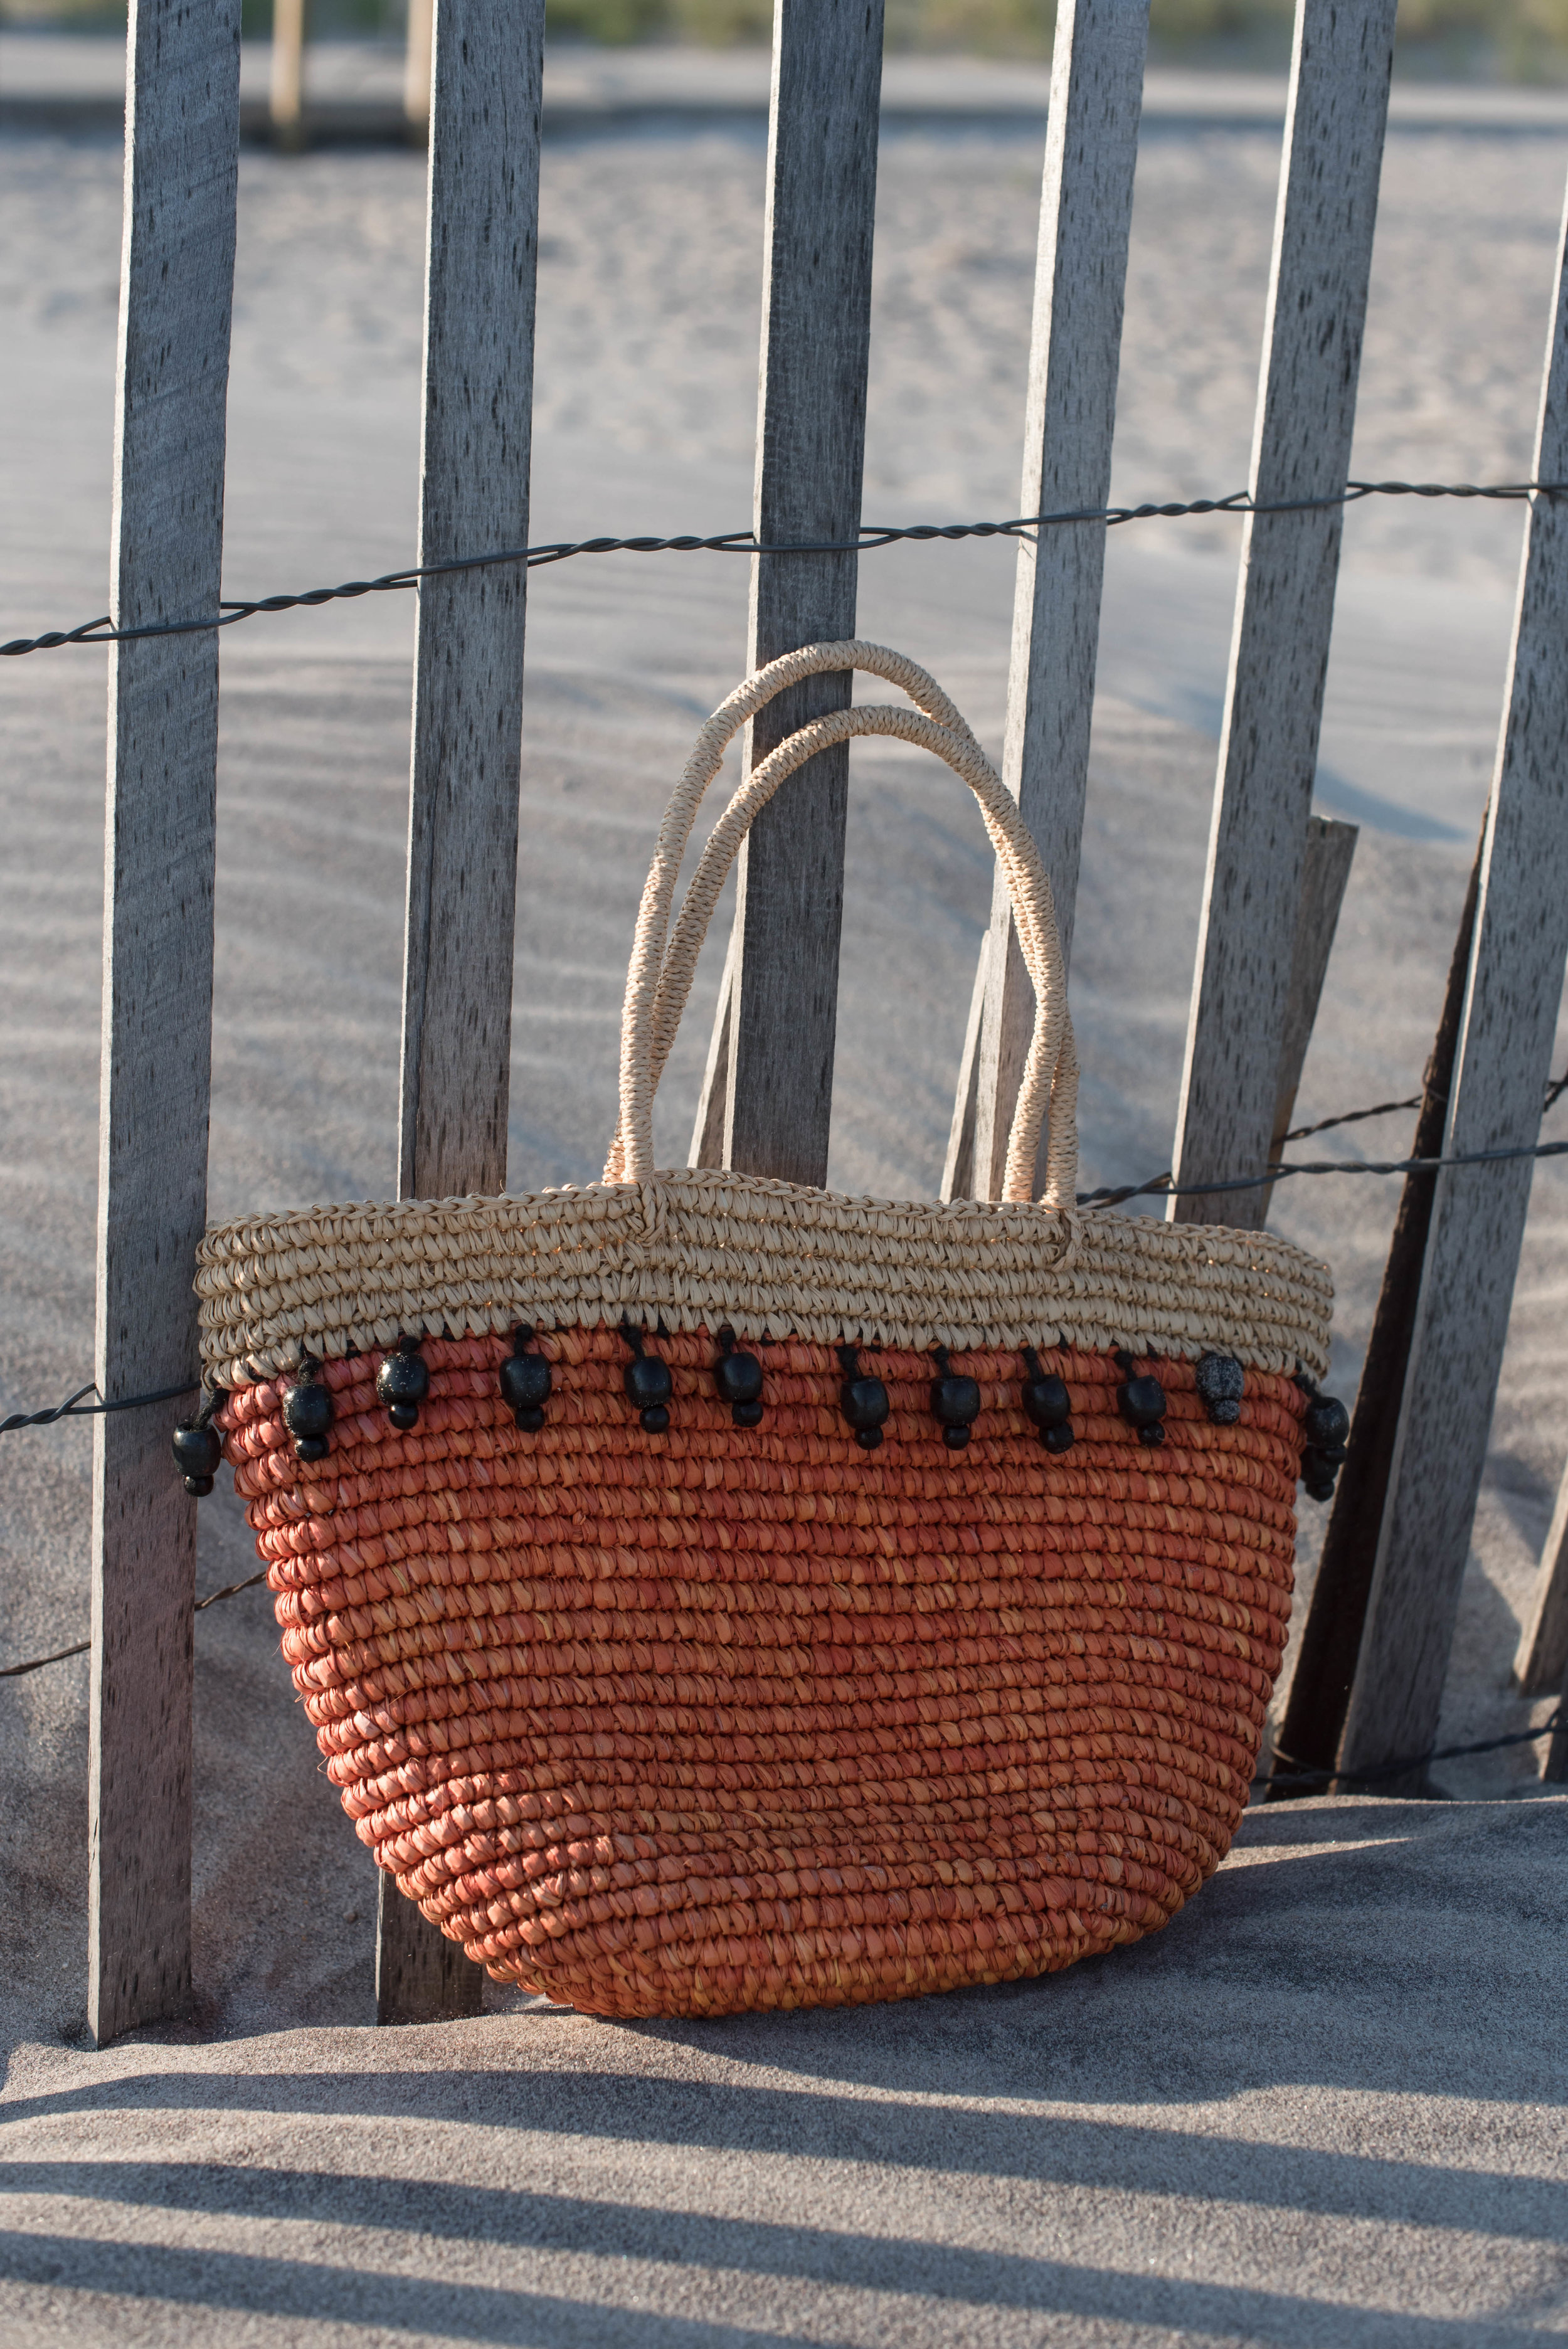 ROSE & IVY Journal A Beach Bag for City or Sand with Sensi Studio